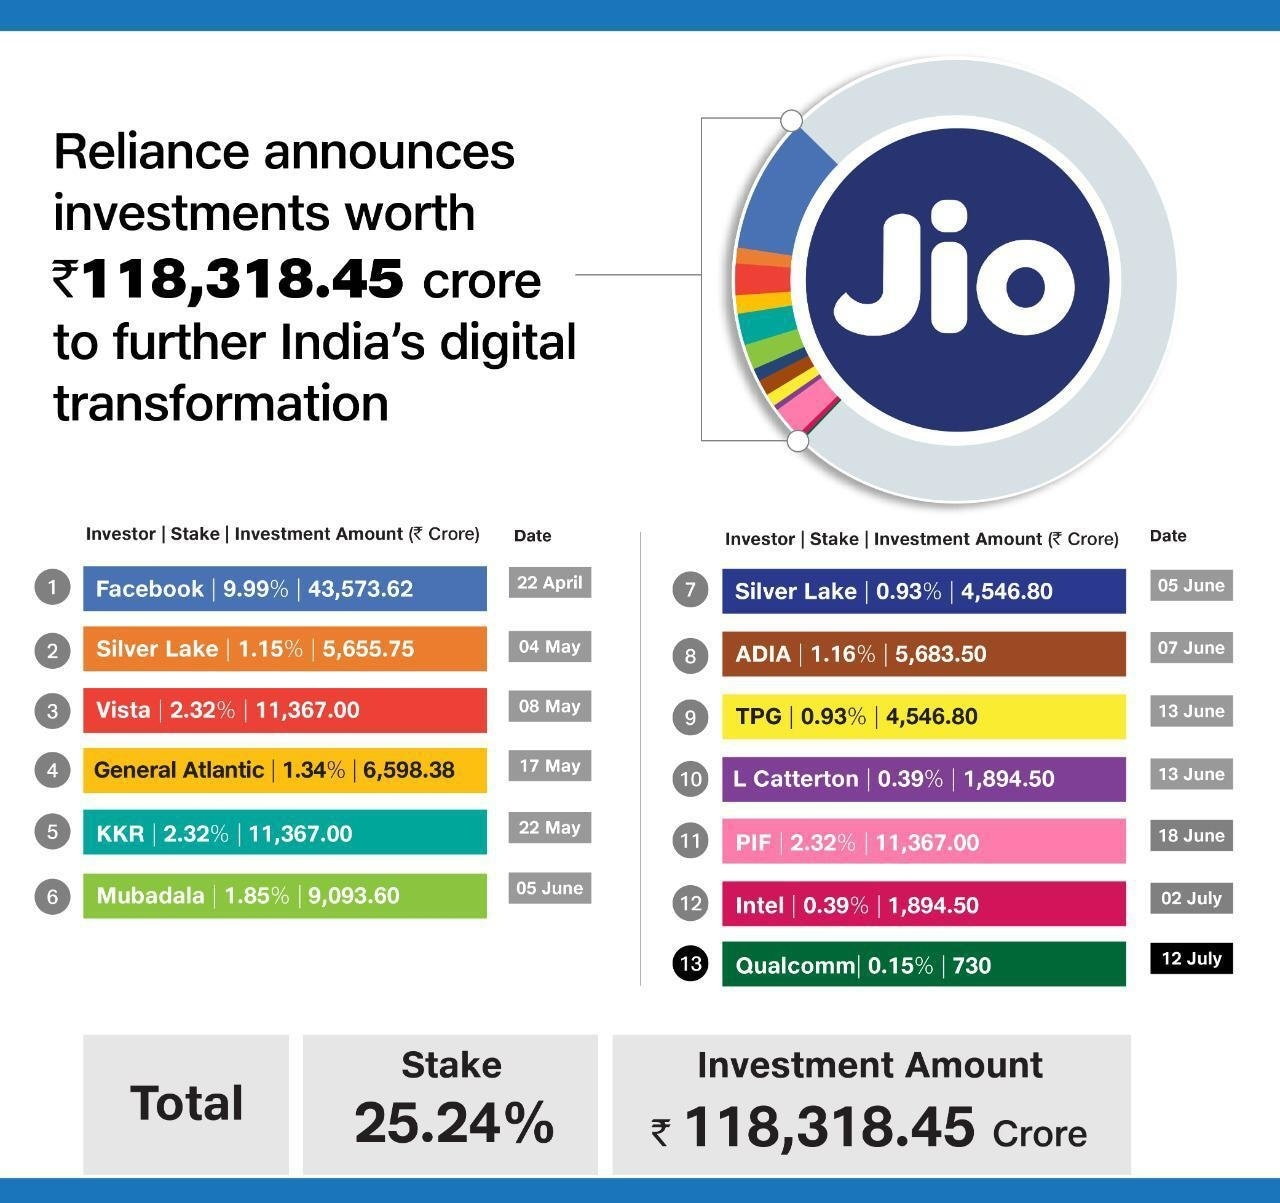 Here's a breakdown of Reliance Jio's investments.